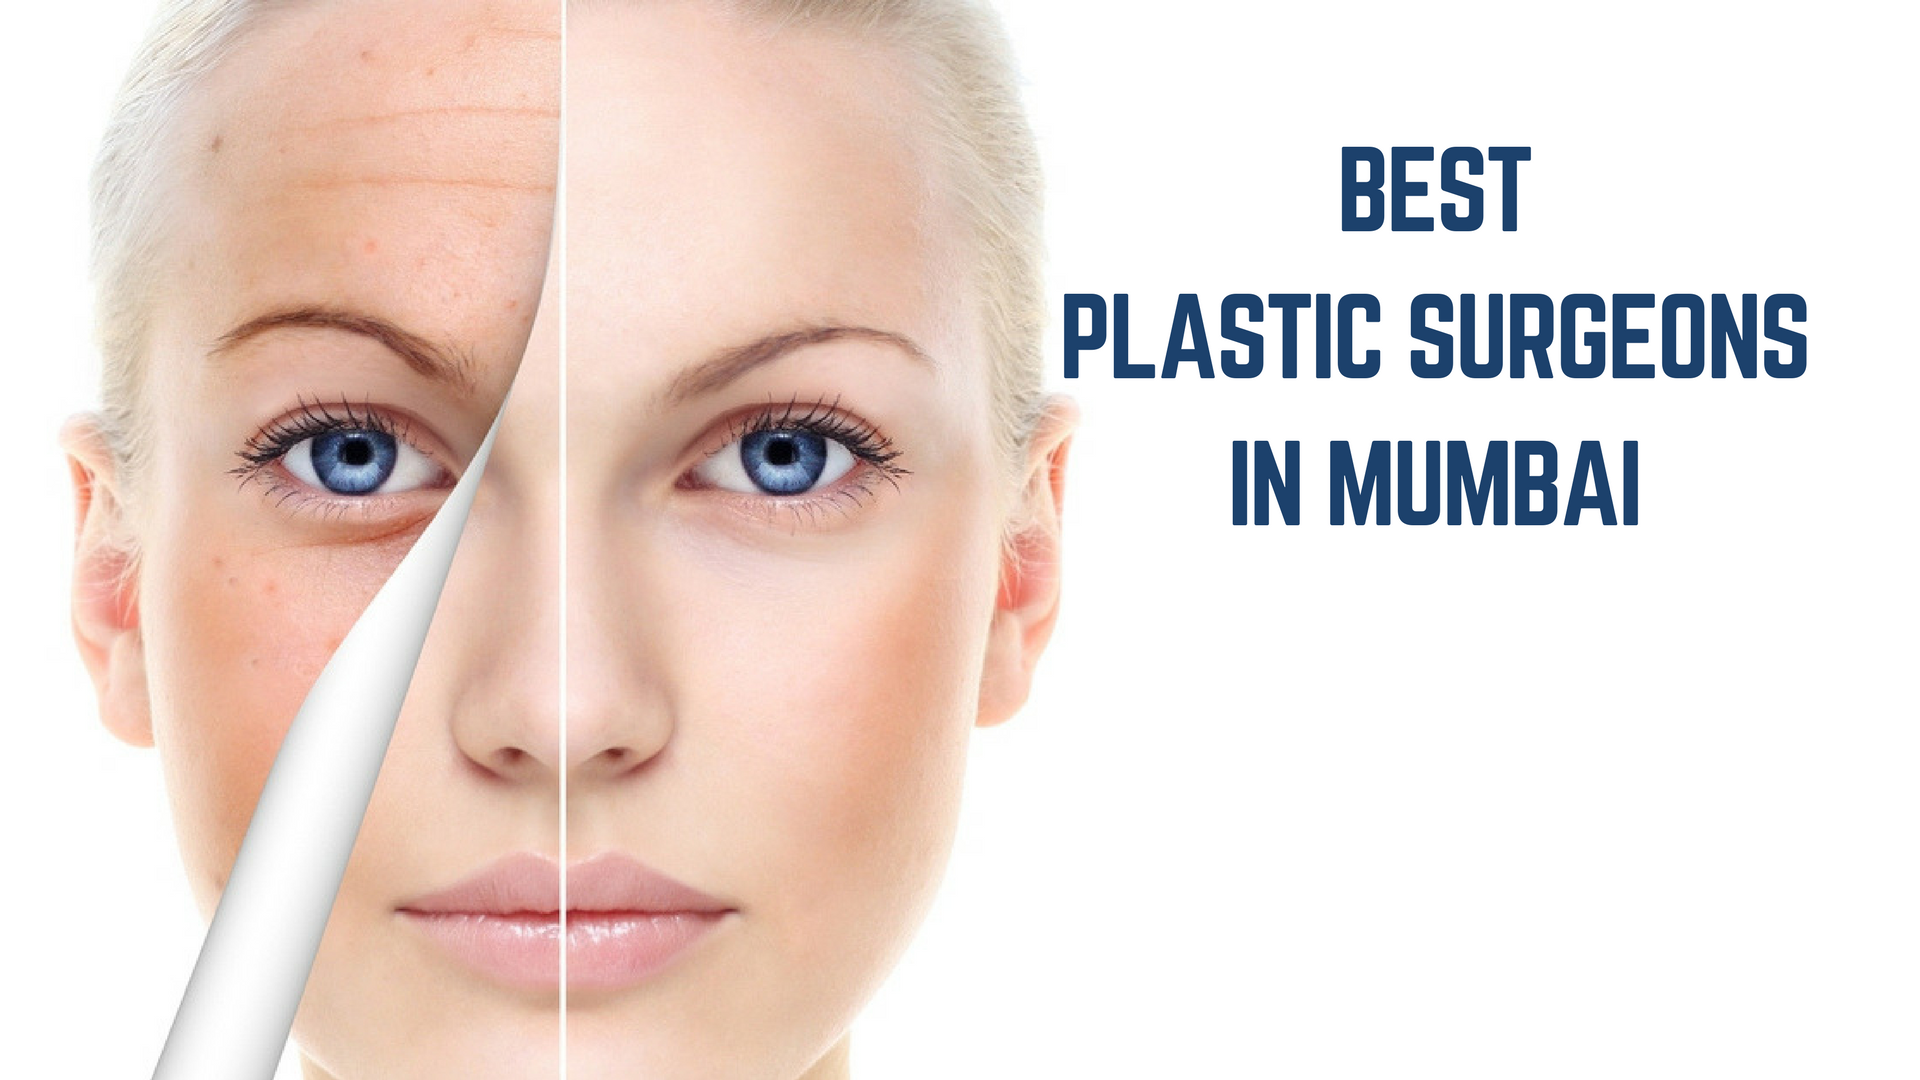 Essencz- Best plastic surgeon in mumbai - Essencz